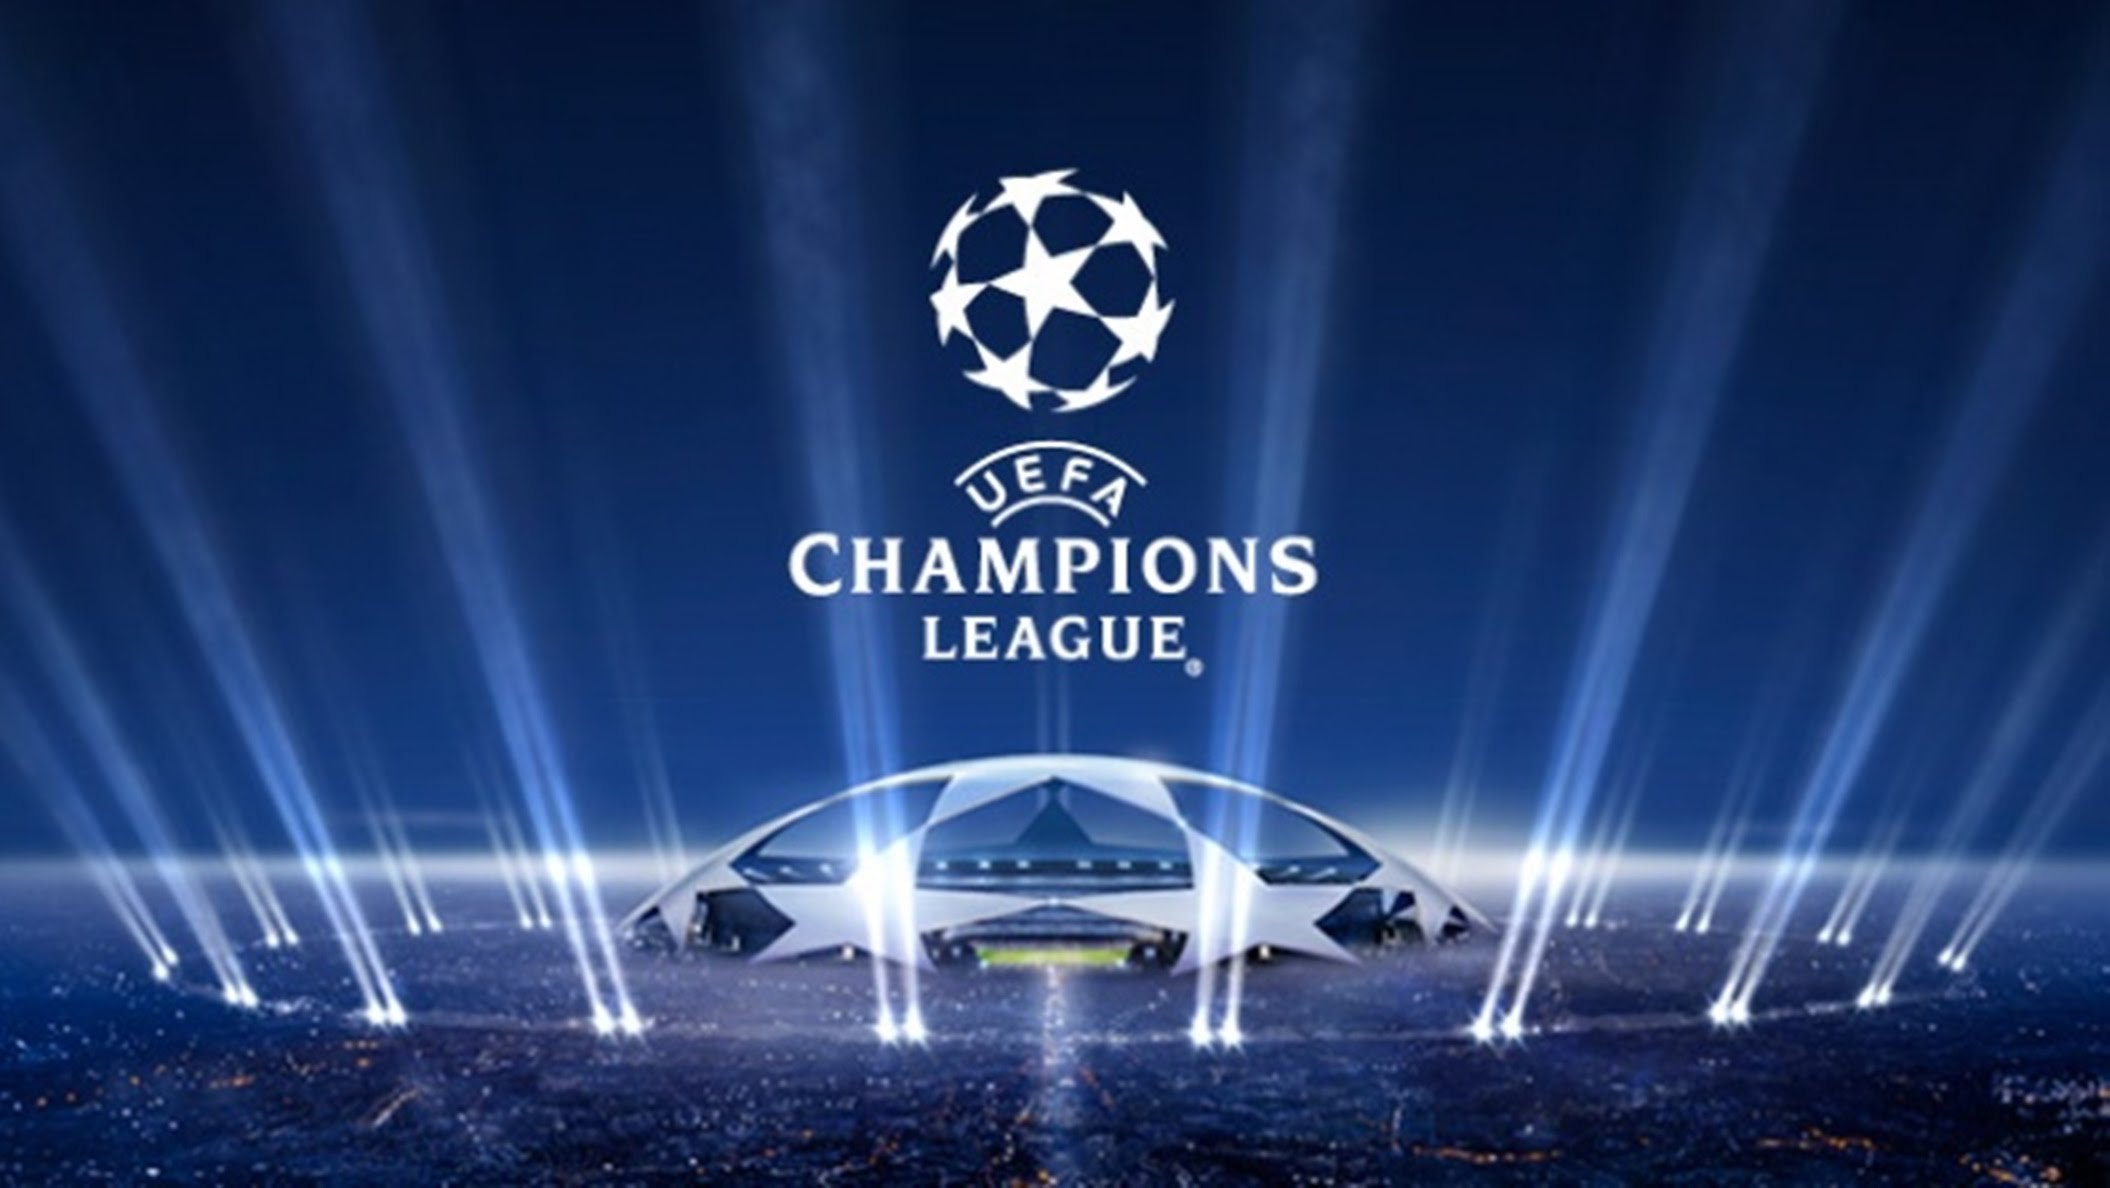 Calendario Uefa Champions League.Champions League 2018 2019 Gironi E Calendario Super Guida Tv